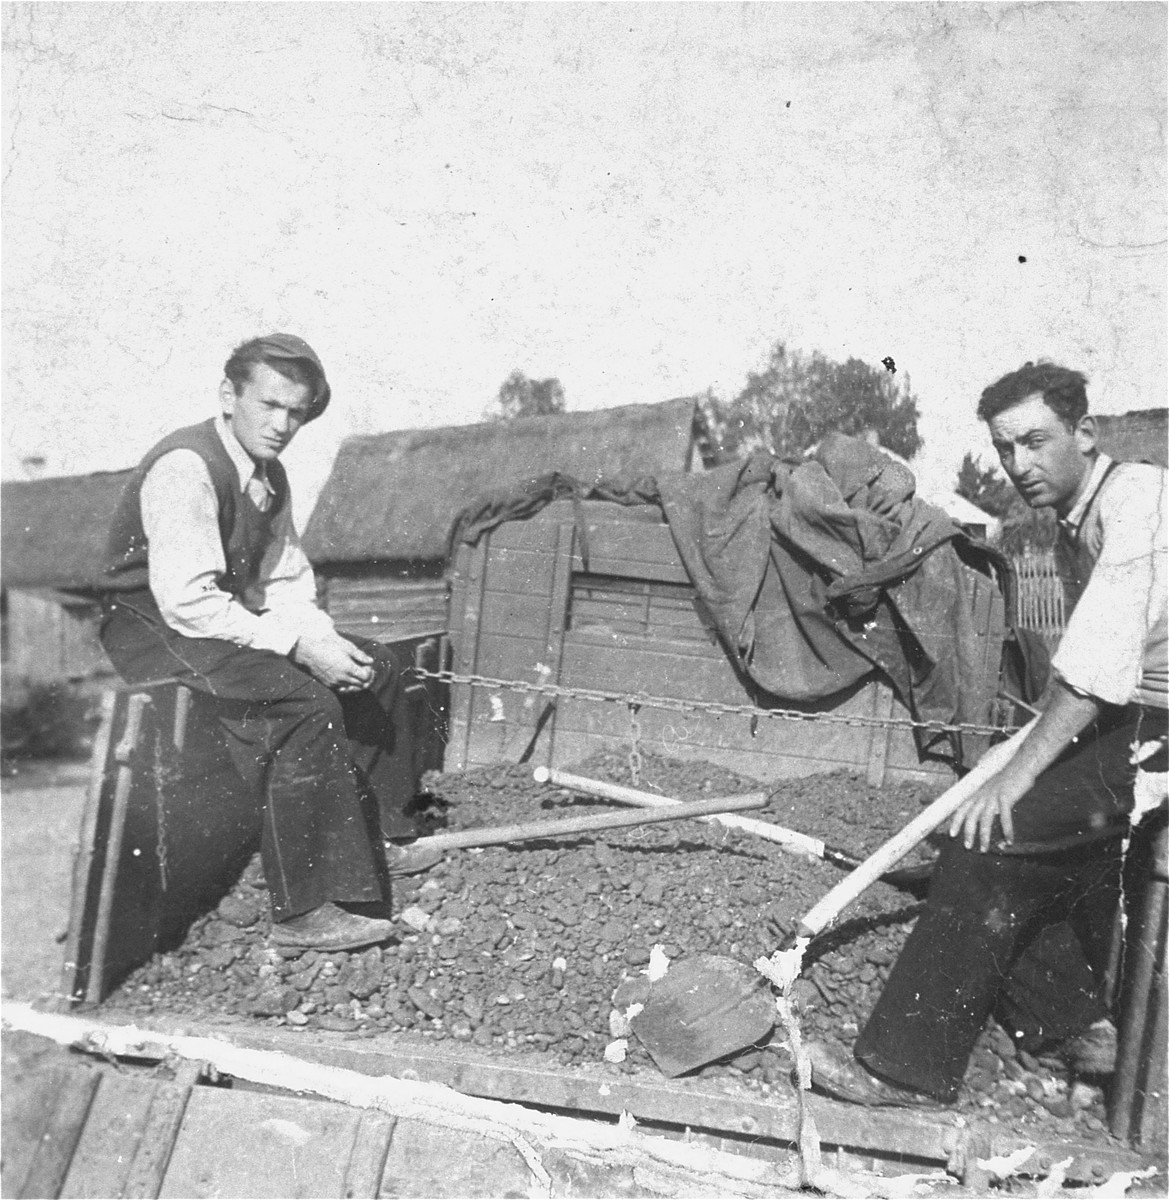 Two young Jewish men at forced labor in the Kolbuszowa ghetto.  Pictured are Maniek Orgel and Izak Stub.